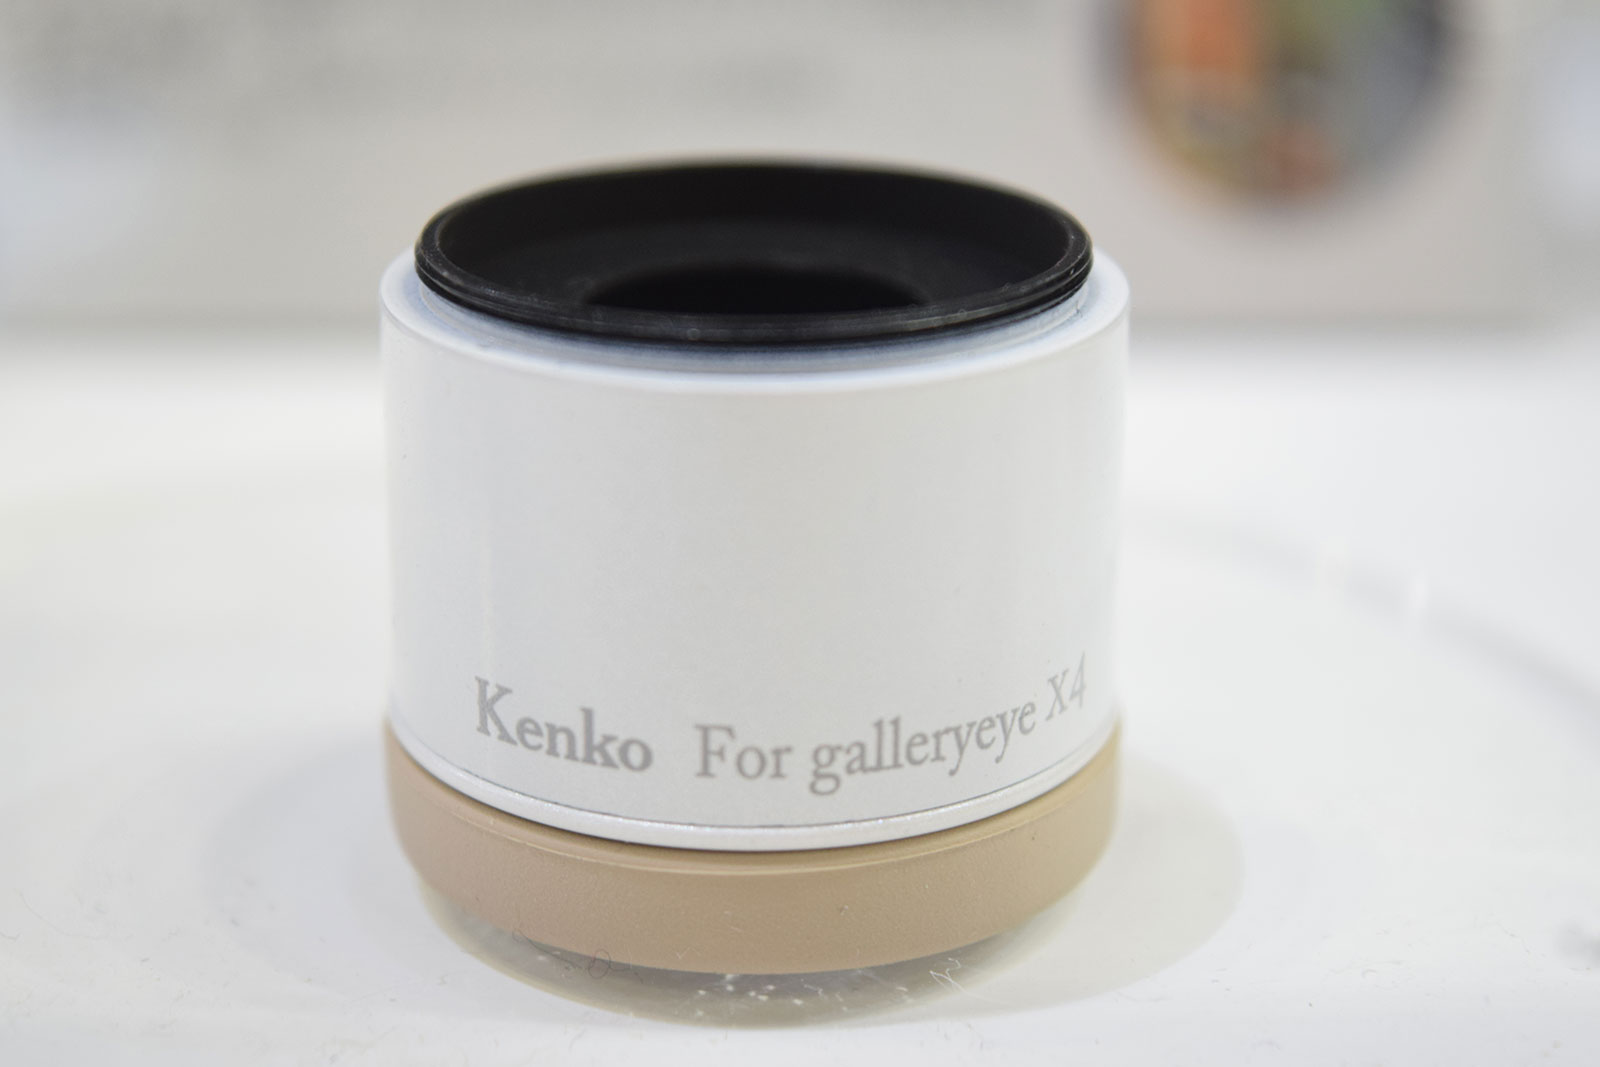 Kenko Galleryeyes monoculars are going to be joined soon by a dedicated C-PL filter, for a view free from light reflections, and a 4x multiplier, to zoom 4x further on your watching scene.